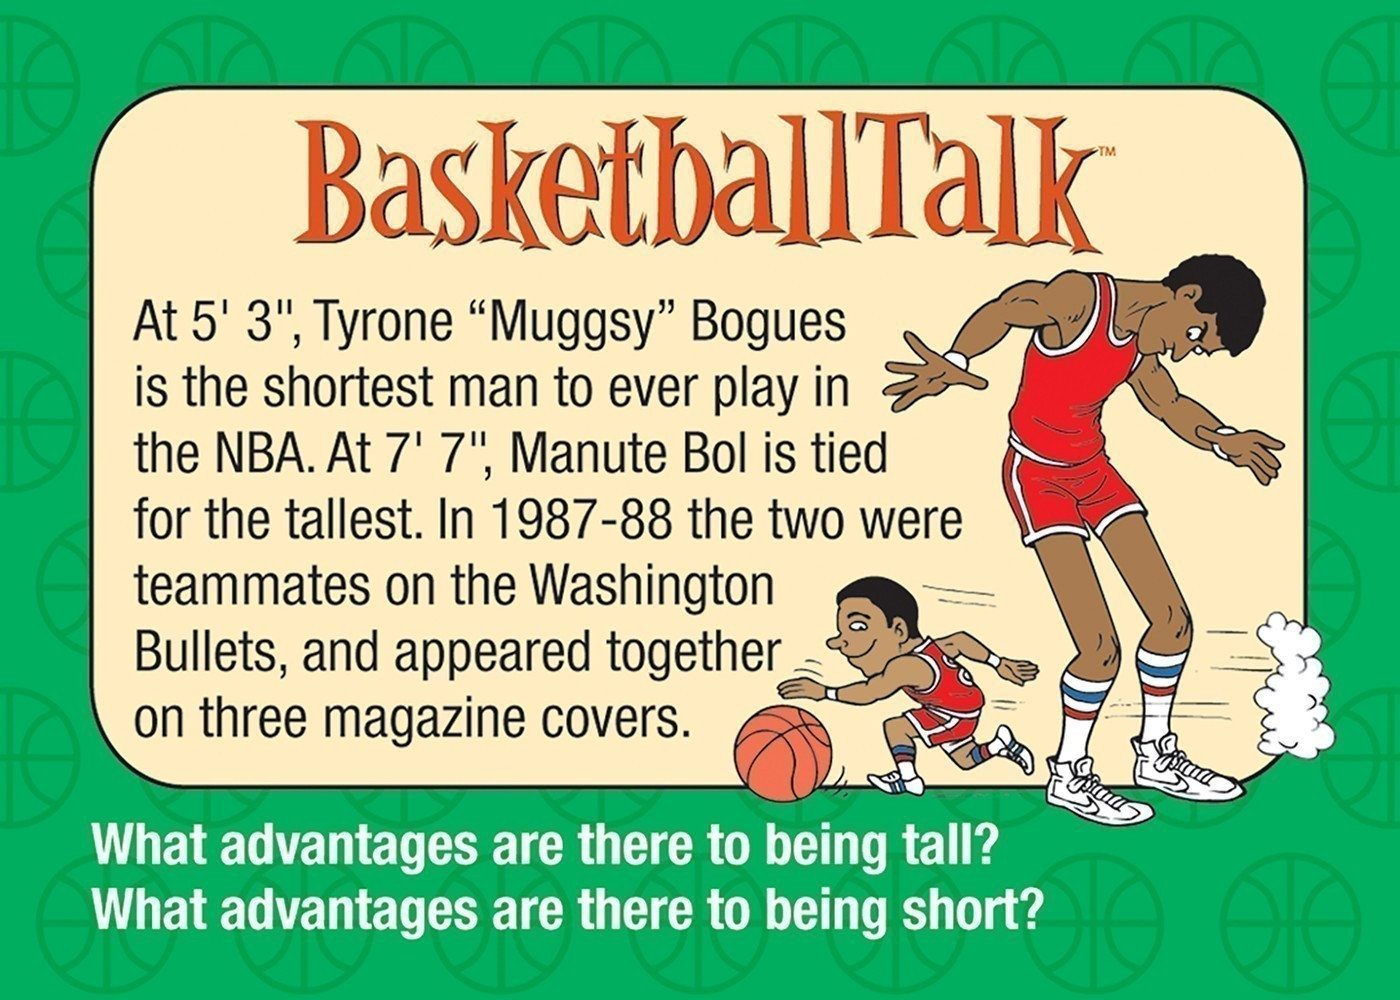 BasketBallTalk™